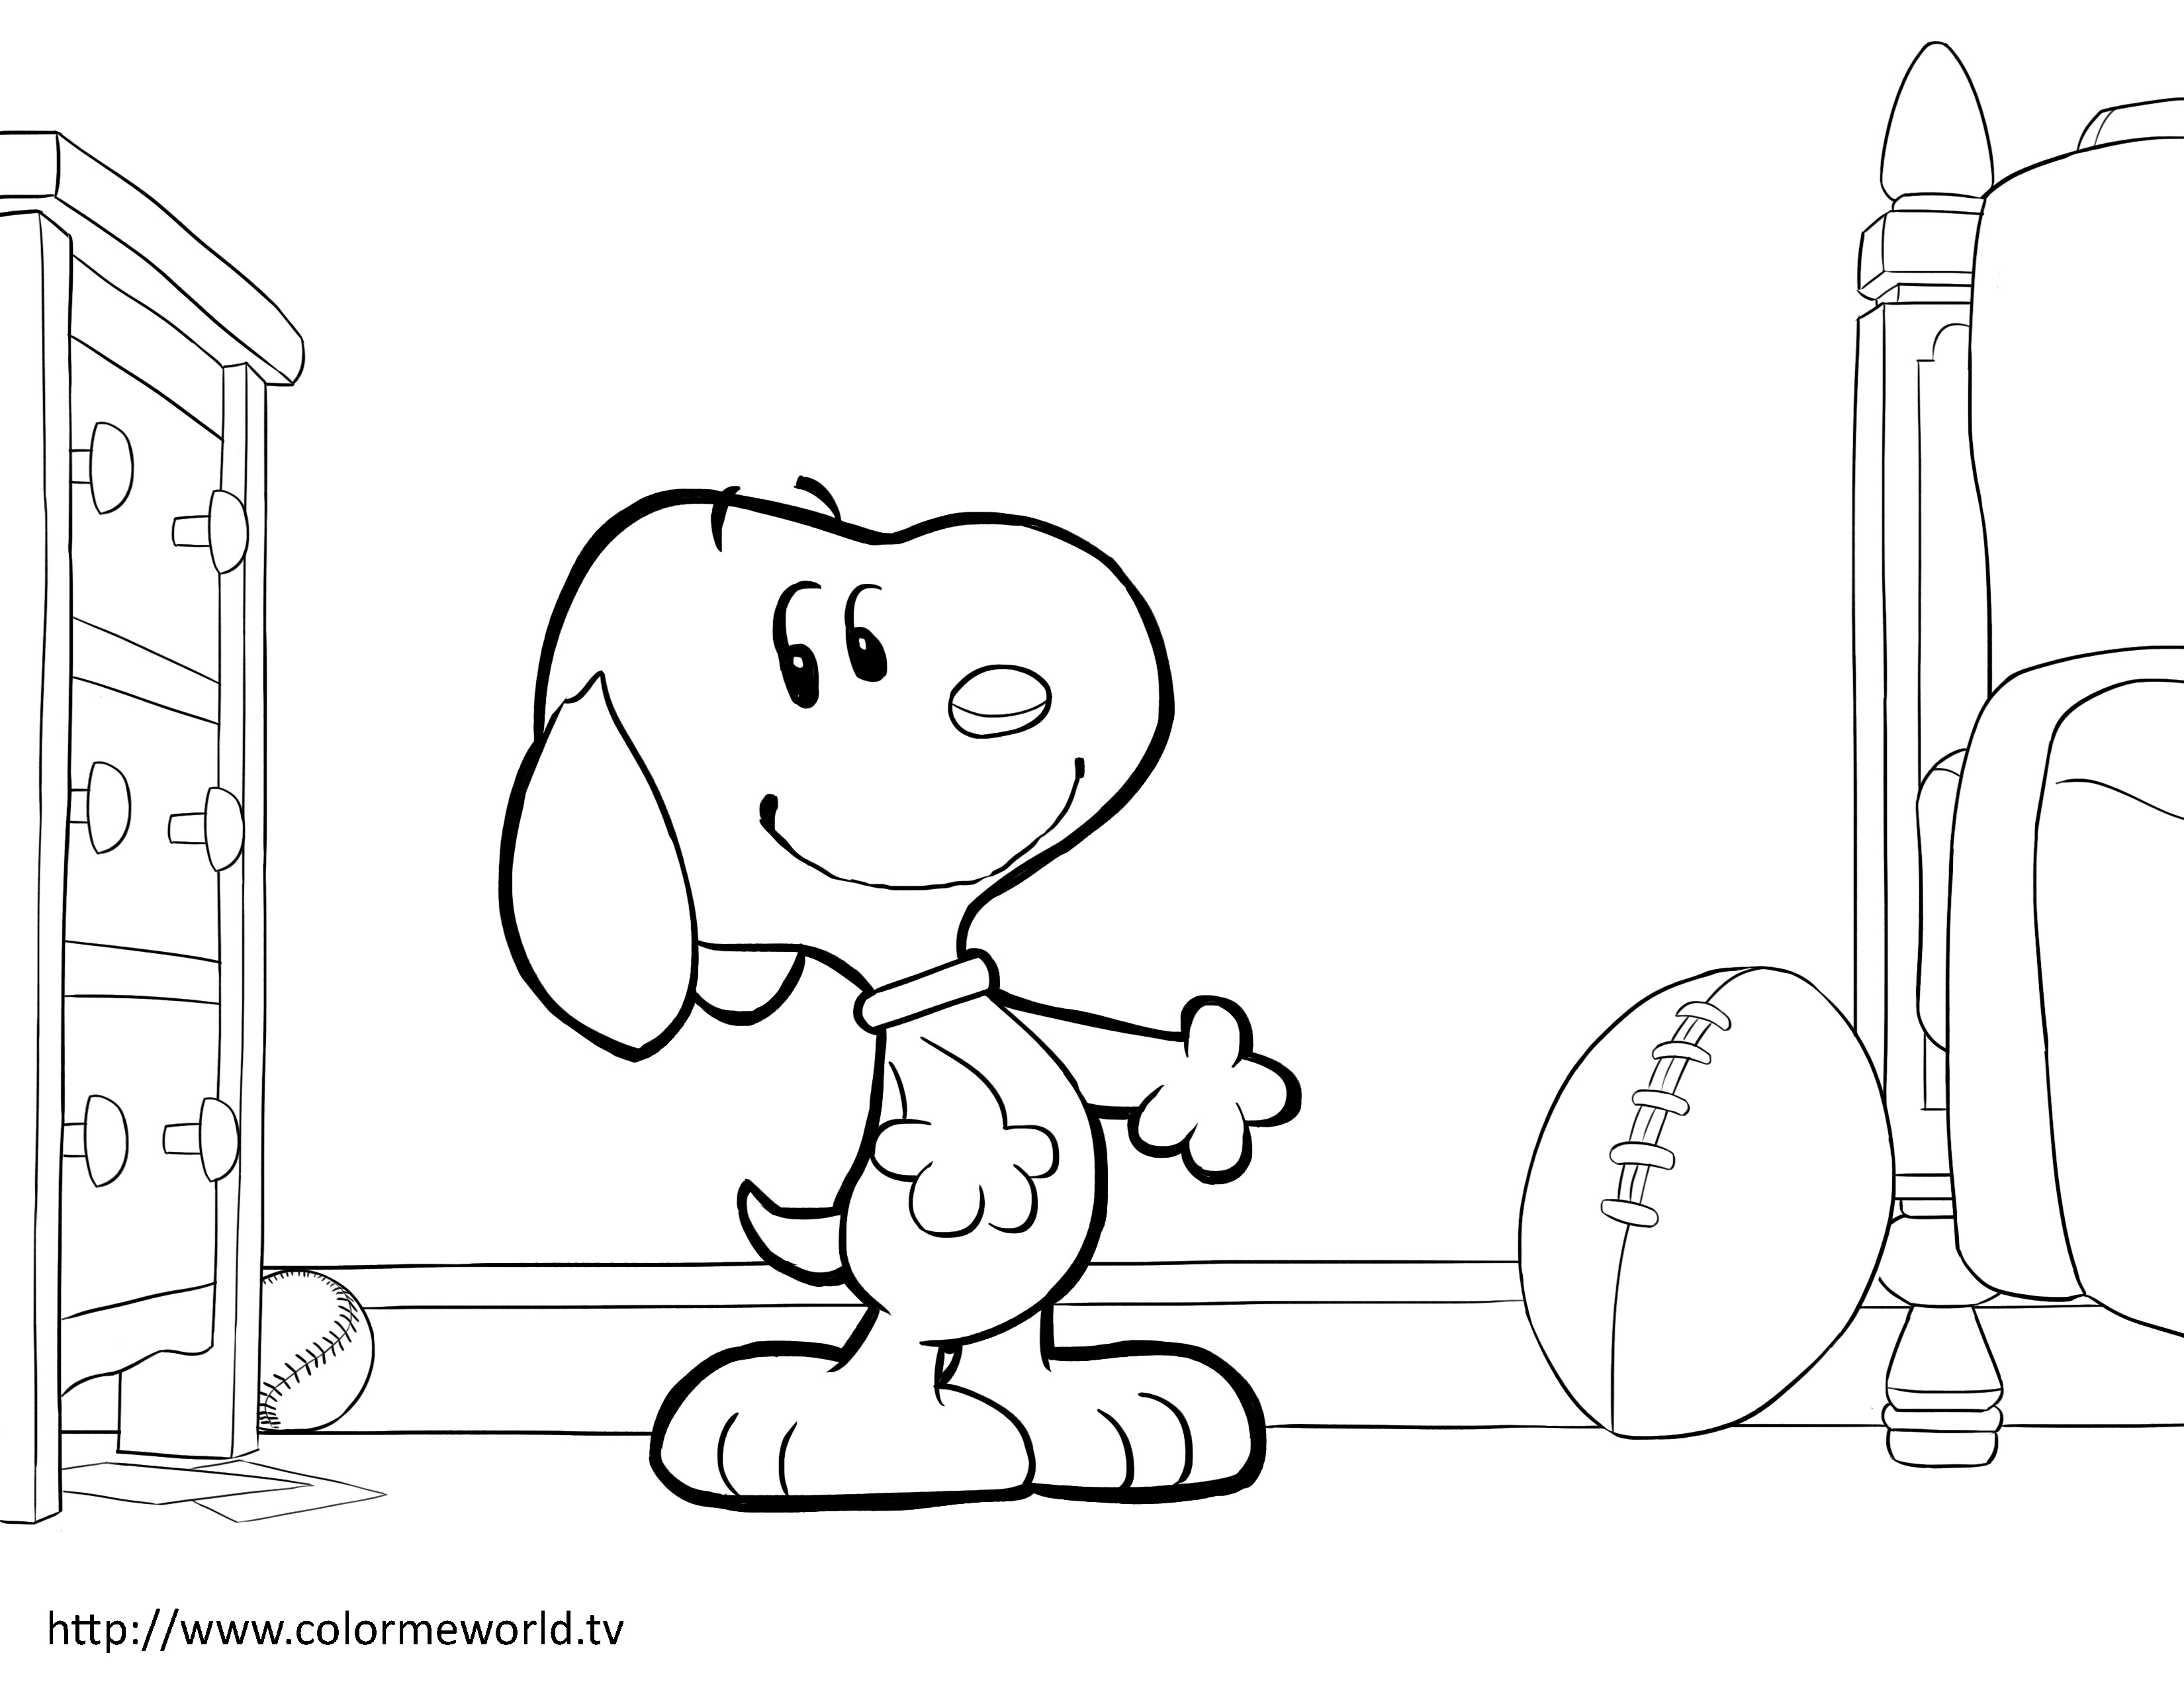 3300x2550 Snoopy With Map Peanuts Gang Coloring Book Page Printable